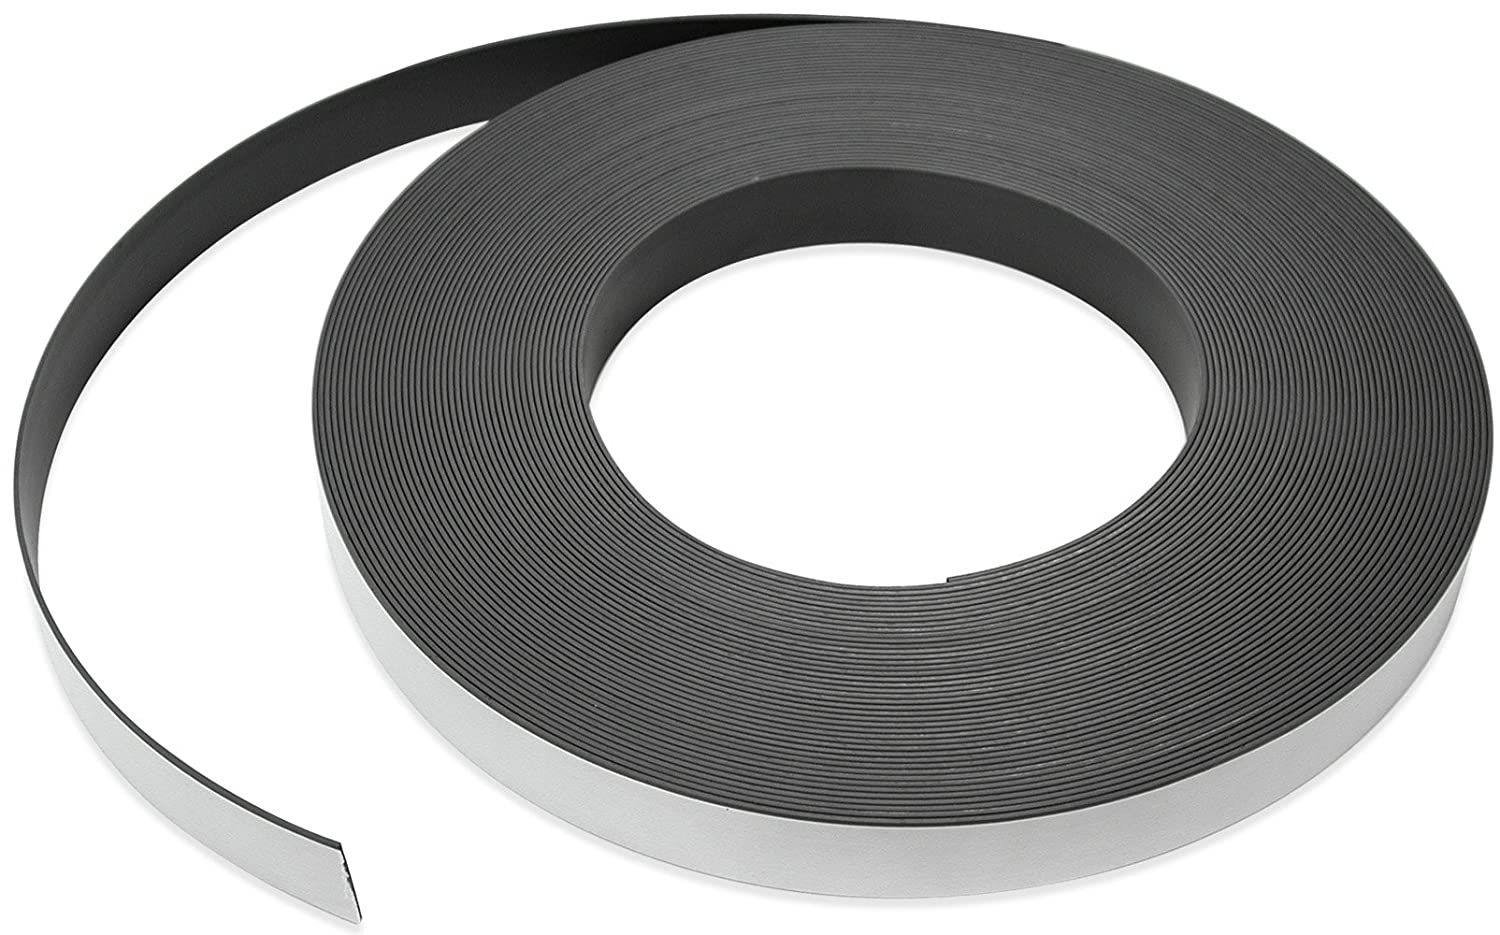 Flexible Magnet Strip with Max 62% OFF White Regular discount Vinyl Coating Thick 1 32